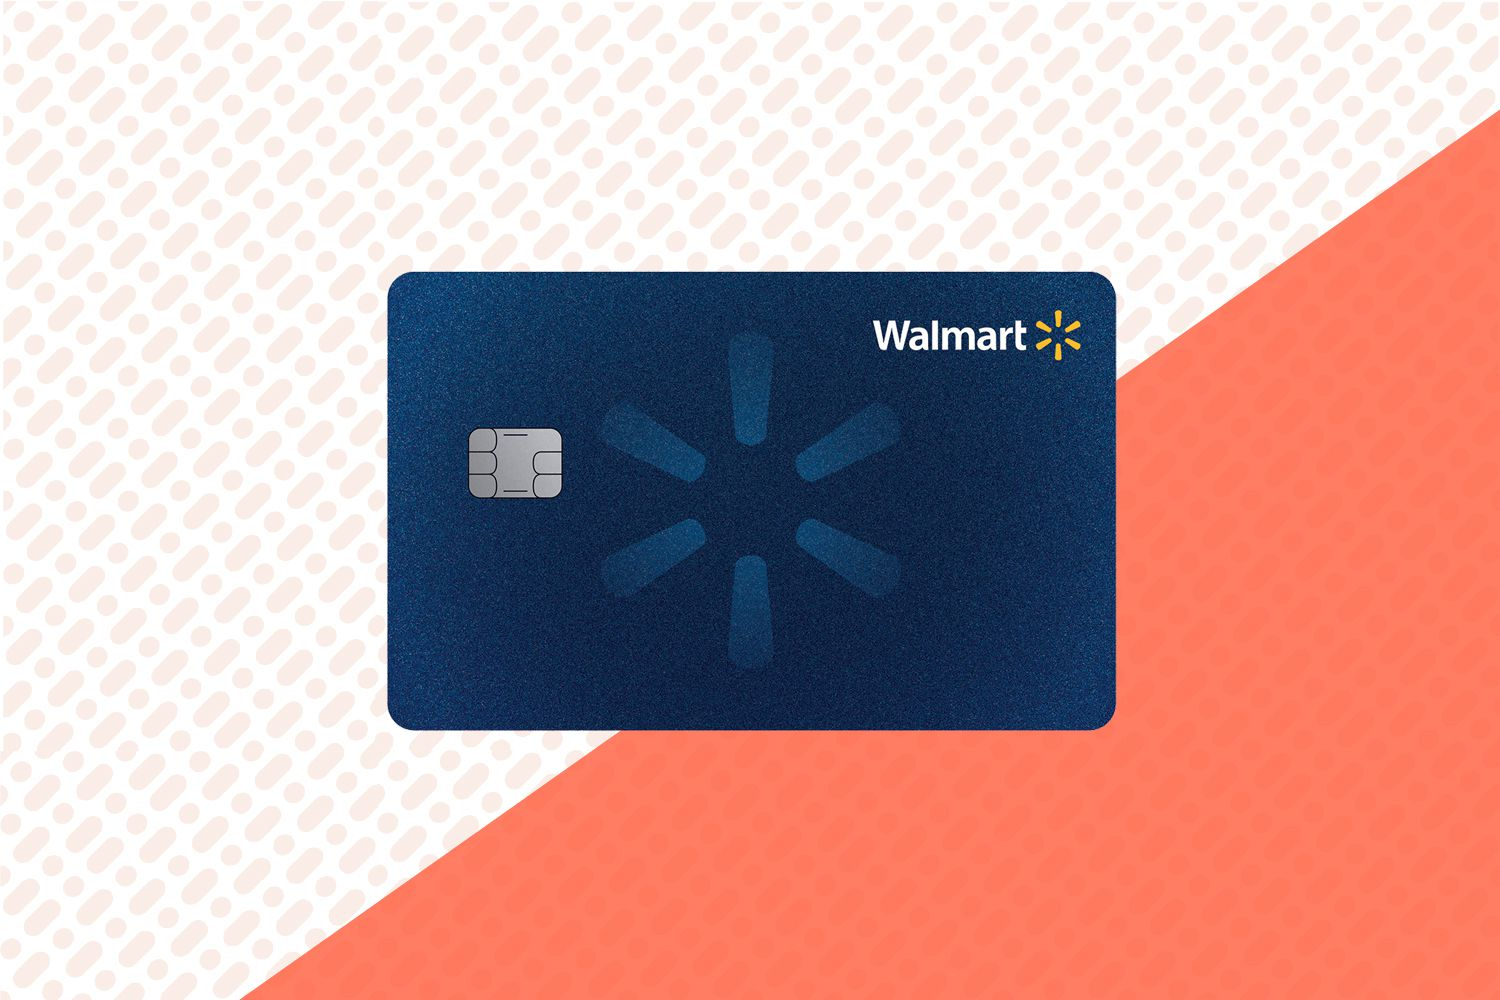 contact capital one walmart credit card